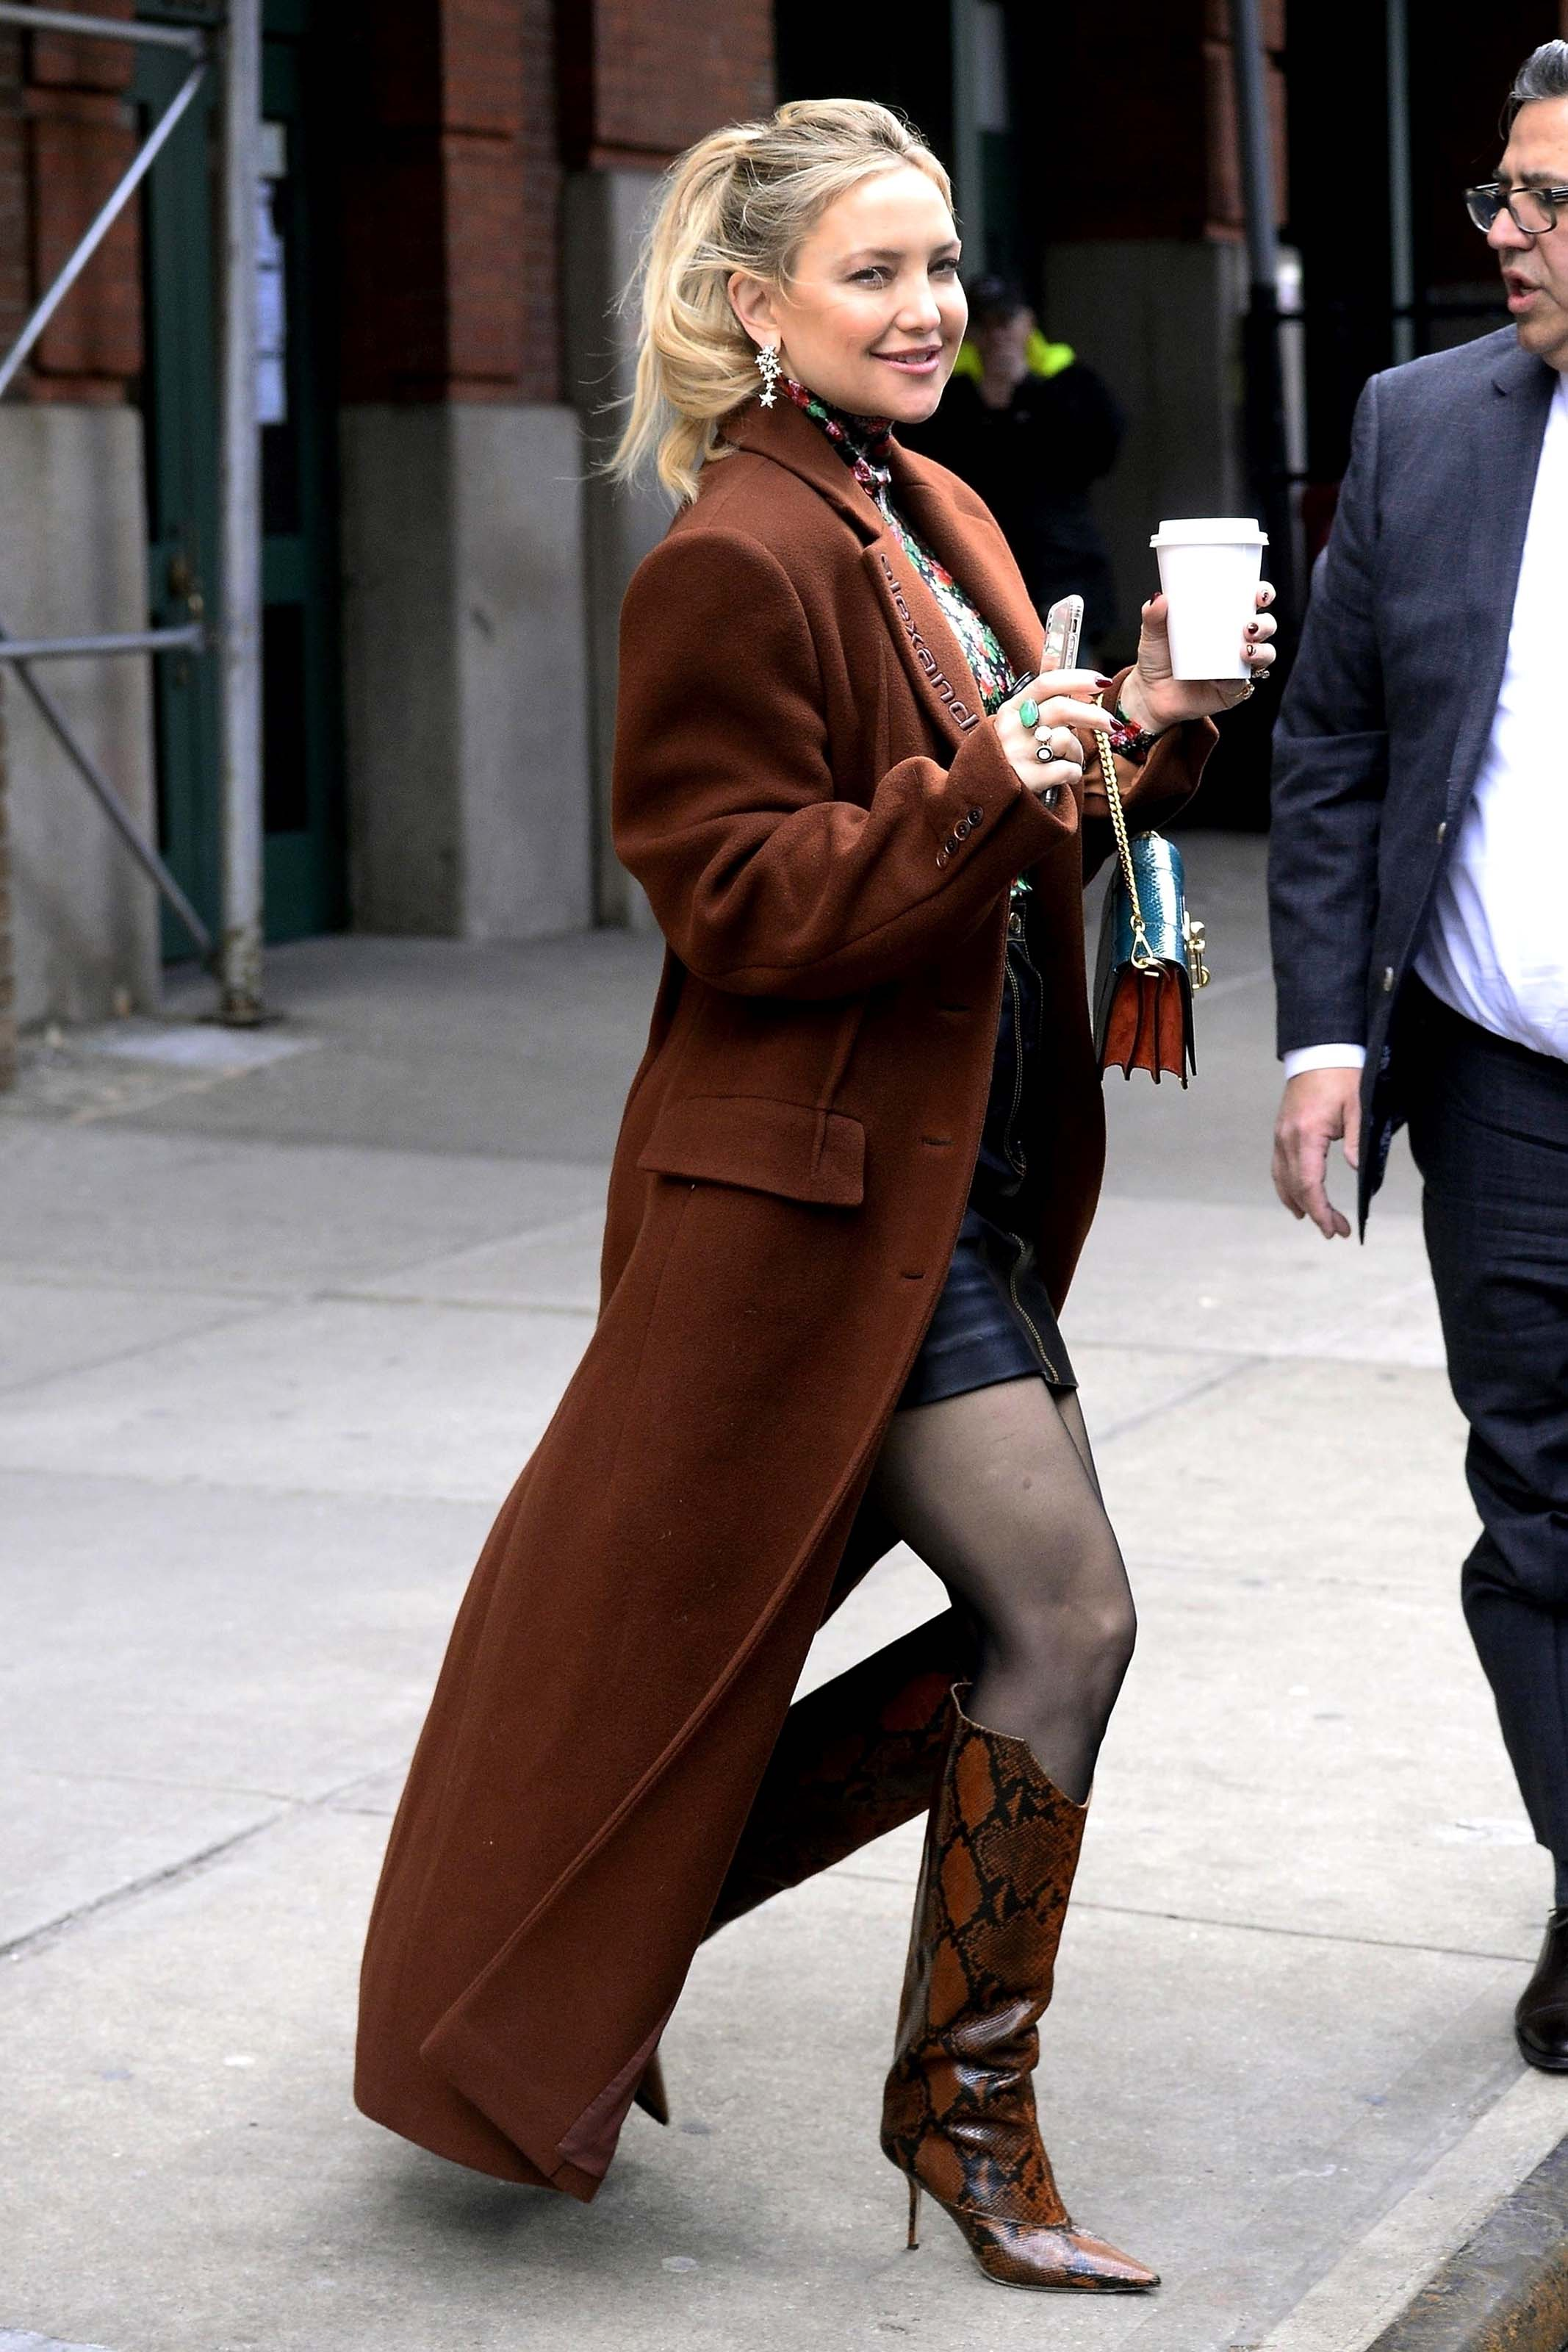 Kate Hudson leaving the Greenwich Hotel